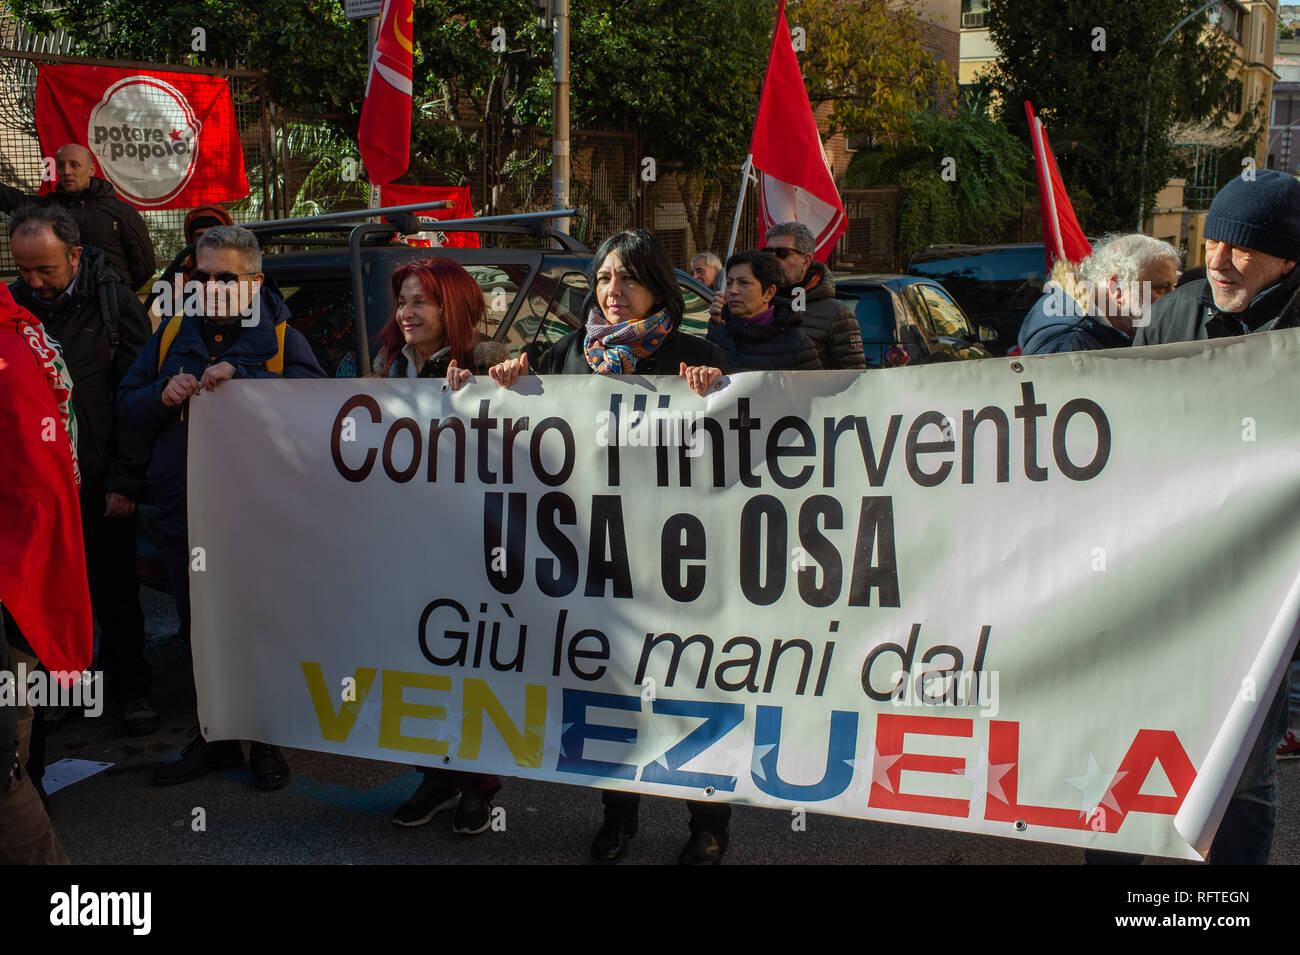 Rome, Italy. 26th January, 2019. In front of the Embassy of the Bolivarian Republic of Venezuela, in Rome, Italy demonstrators of left-wing Italian parties show solidarity with the government of President of Venezuela Nicolás Maduro Credit: Roberto Nistri/Alamy Live News - Stock Image